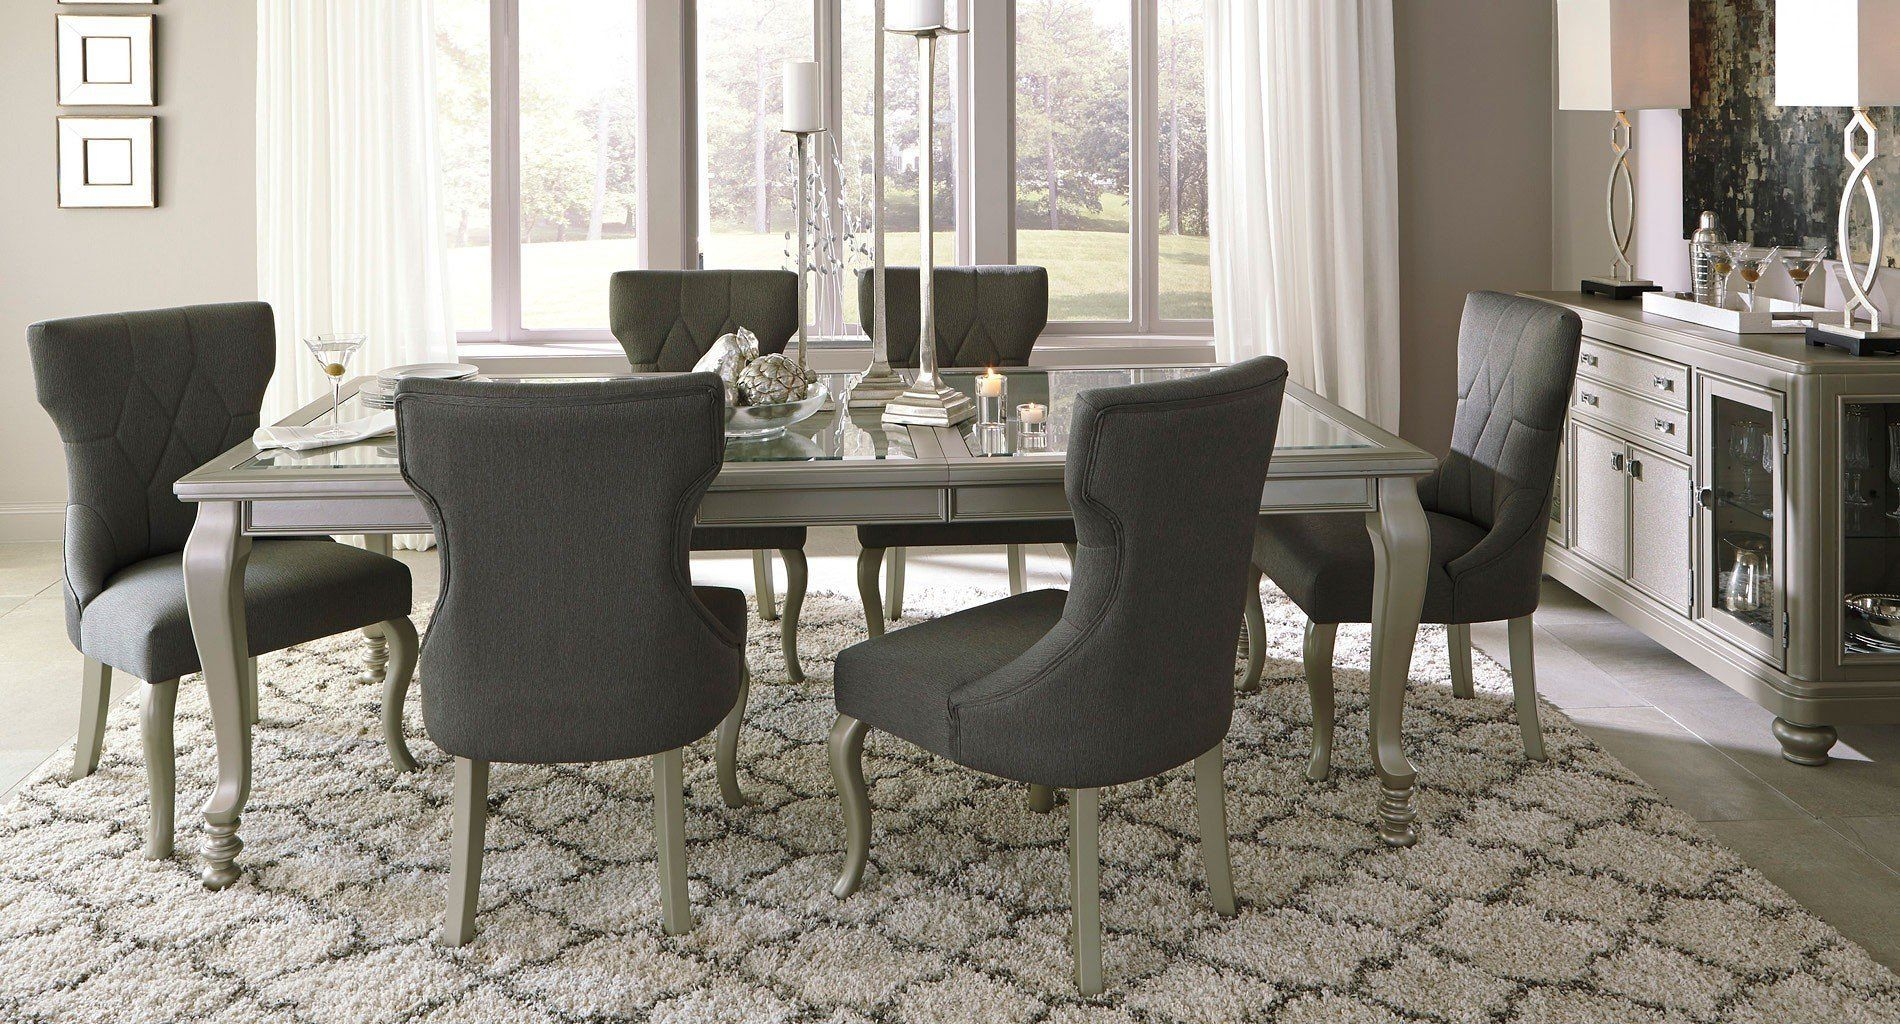 Coralayne Dining Room Set pany Pinterest